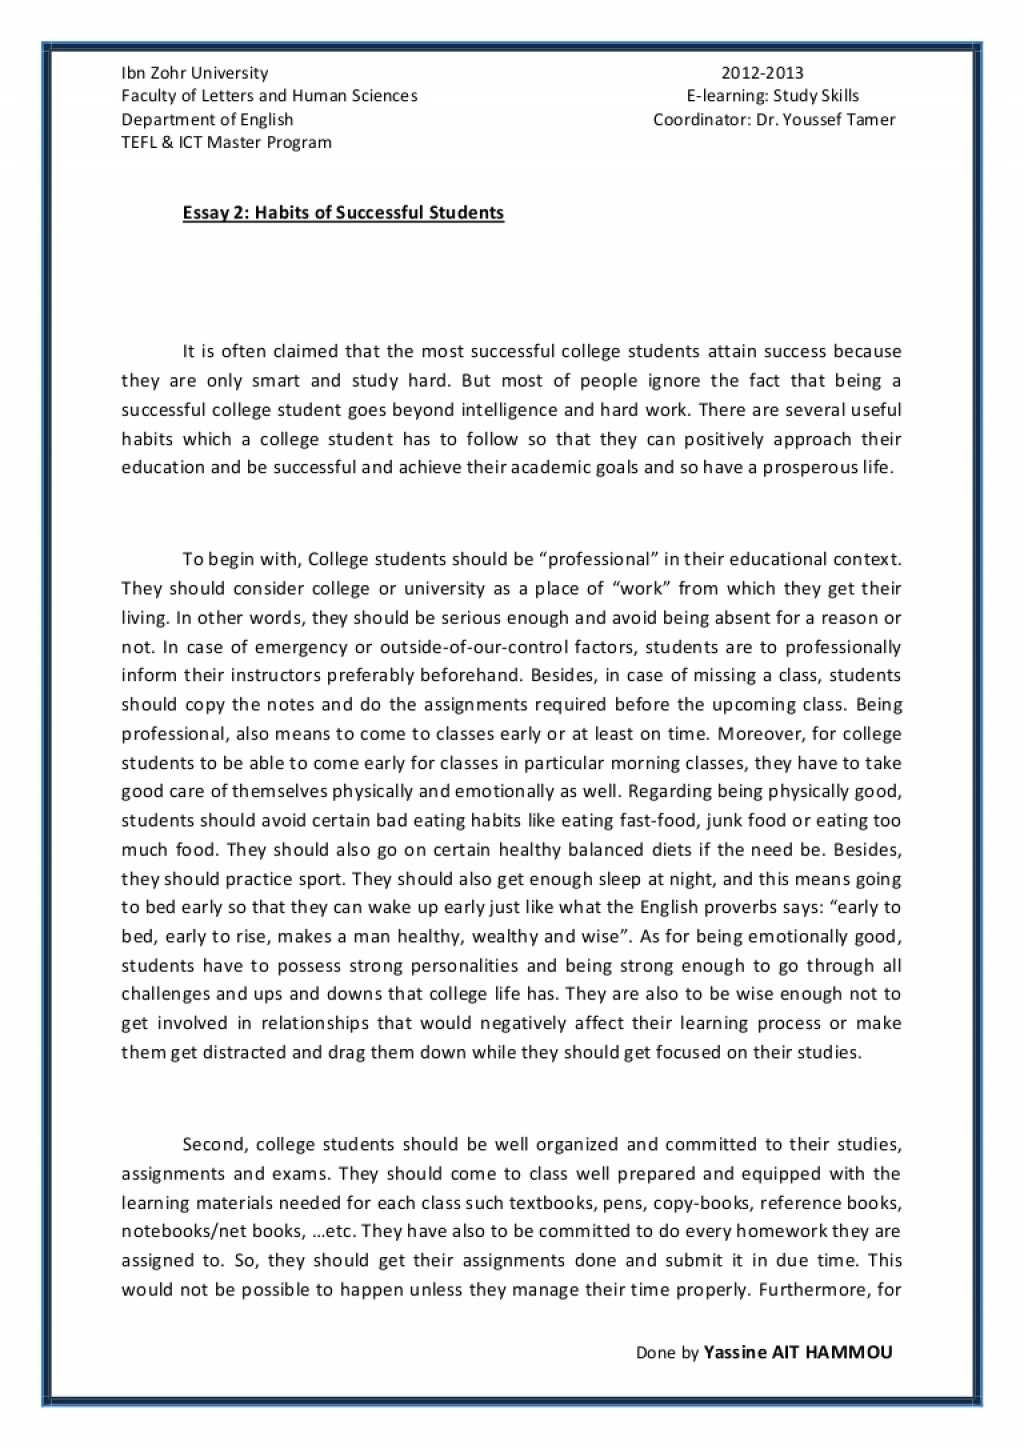 008 How Long Is Short Essay Essay2 Succesfulcollegestudentshabitsbyyassineaithammou Phpapp01 Thumbnail Incredible A In High School Response For College Applications Large